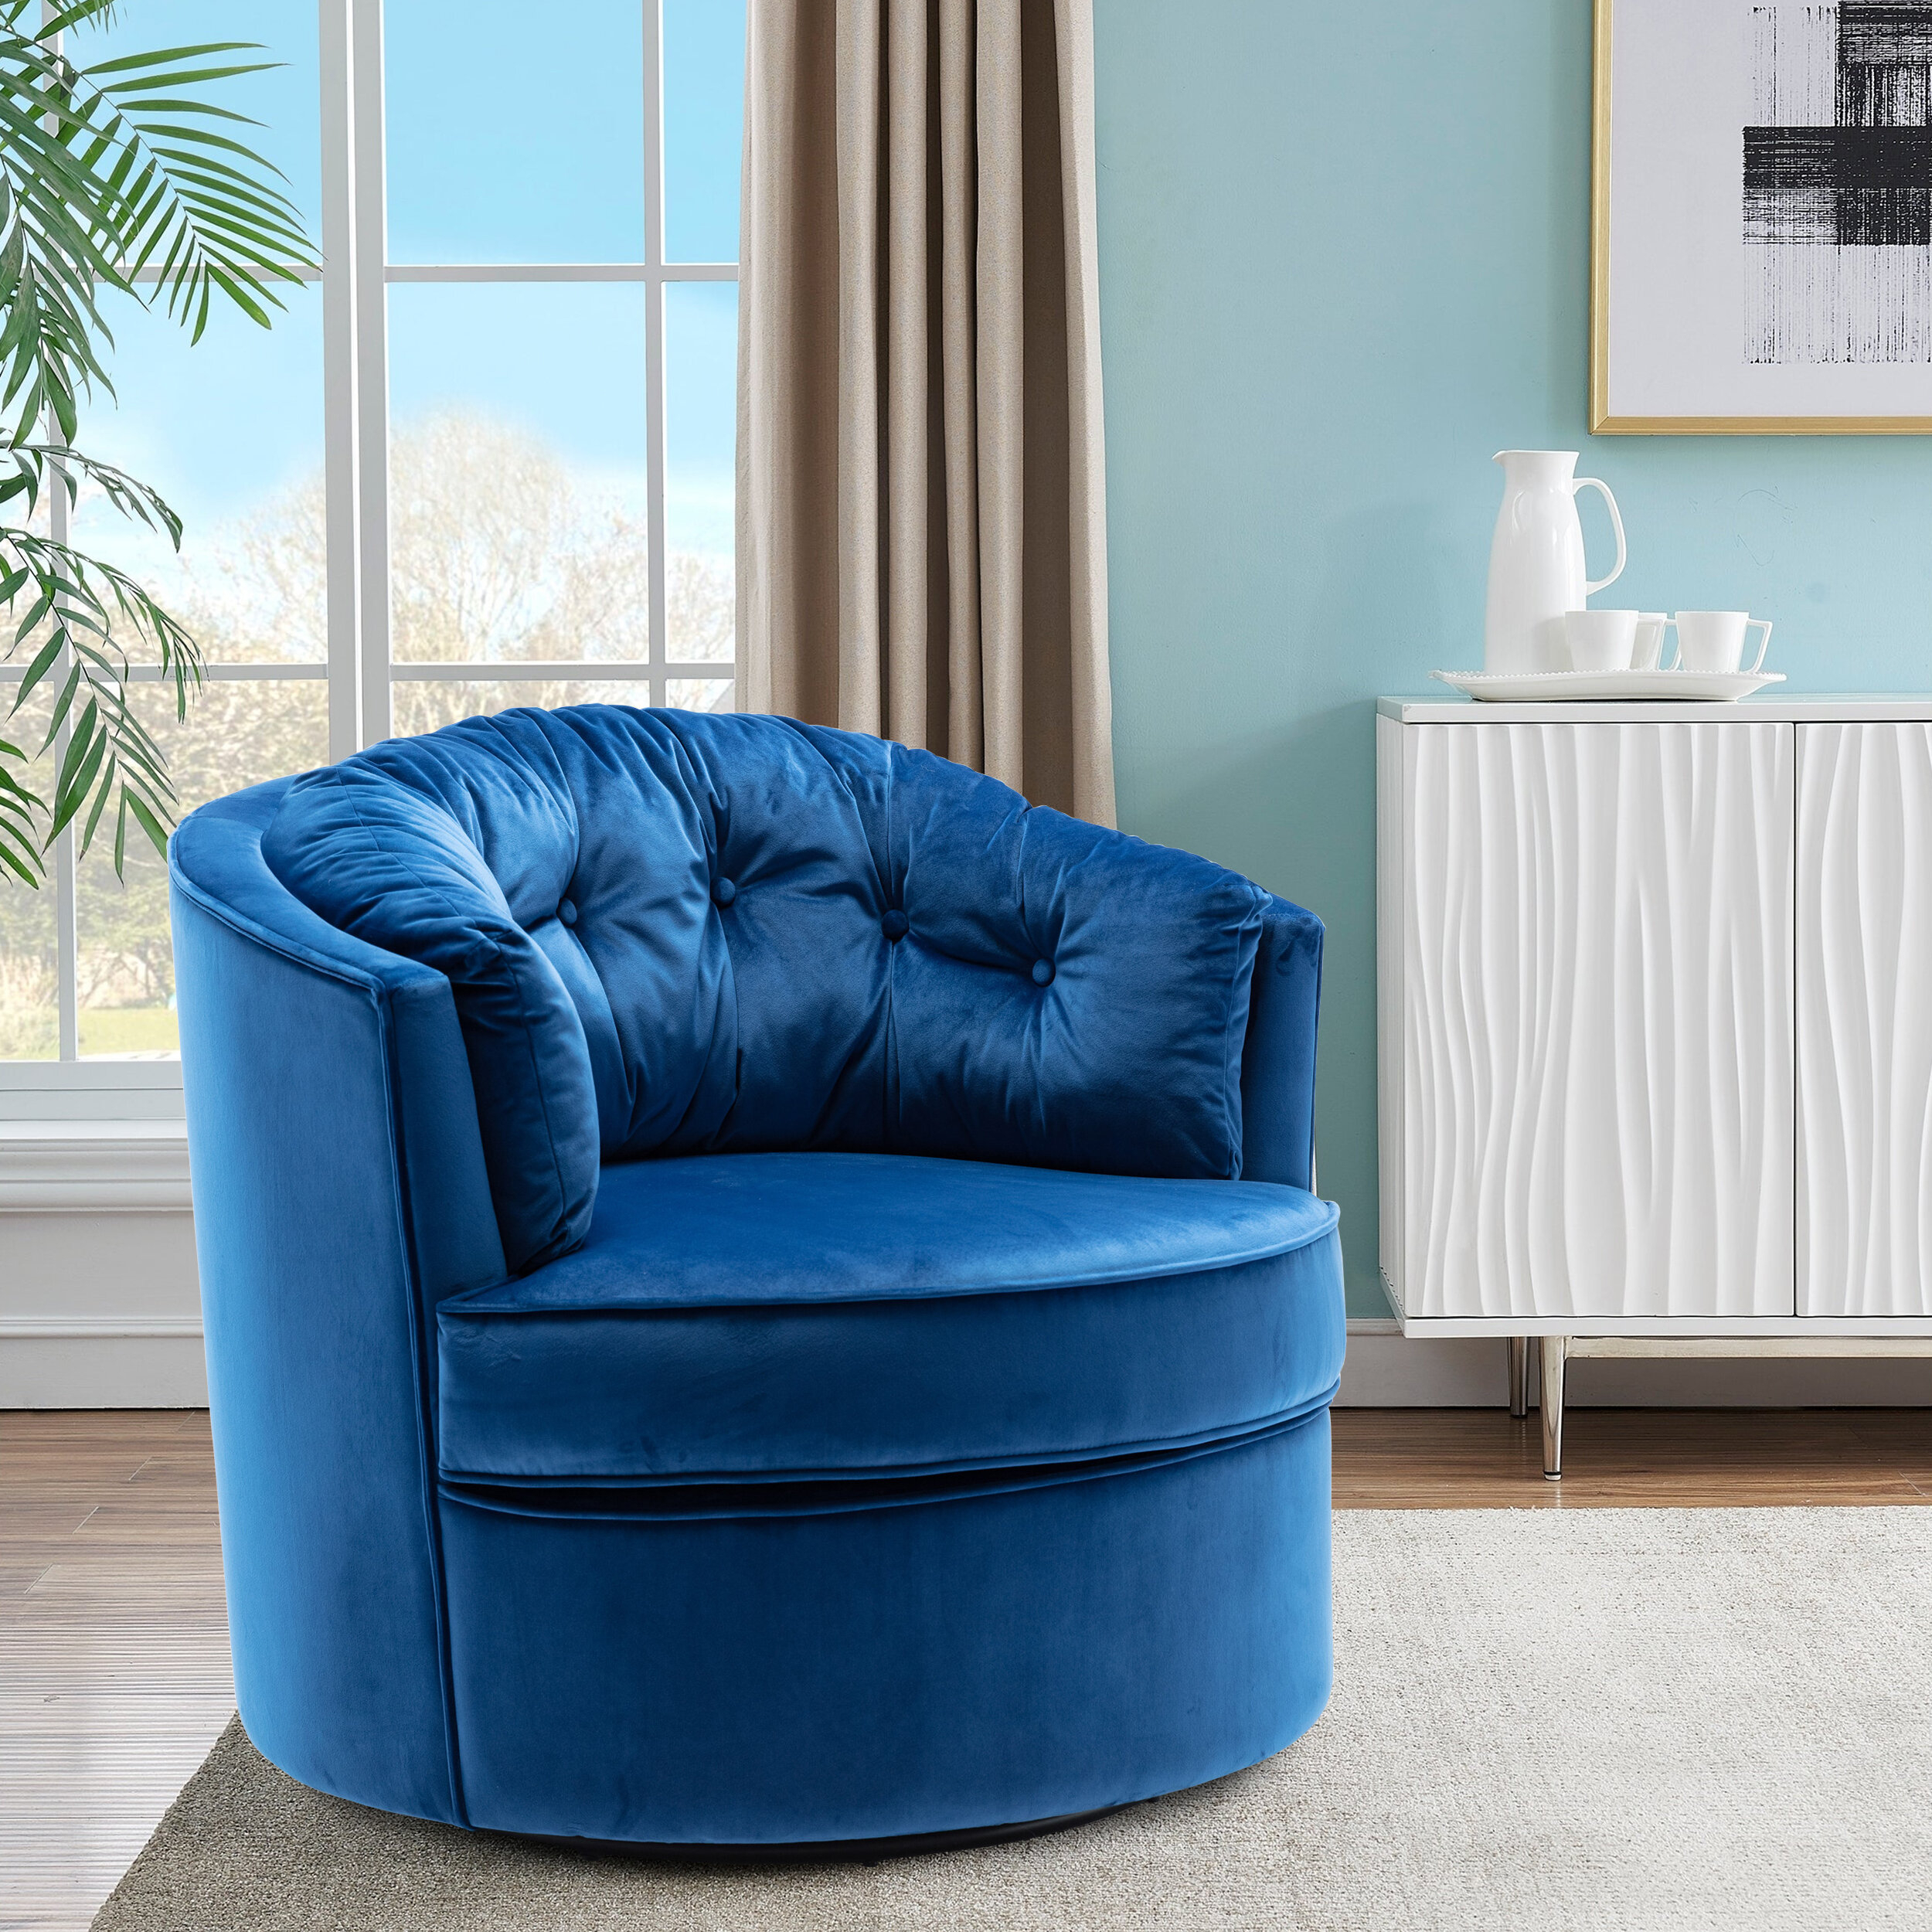 Barrel Accent Chairs On Sale | Wayfair For Giguere Barrel Chairs (View 10 of 15)